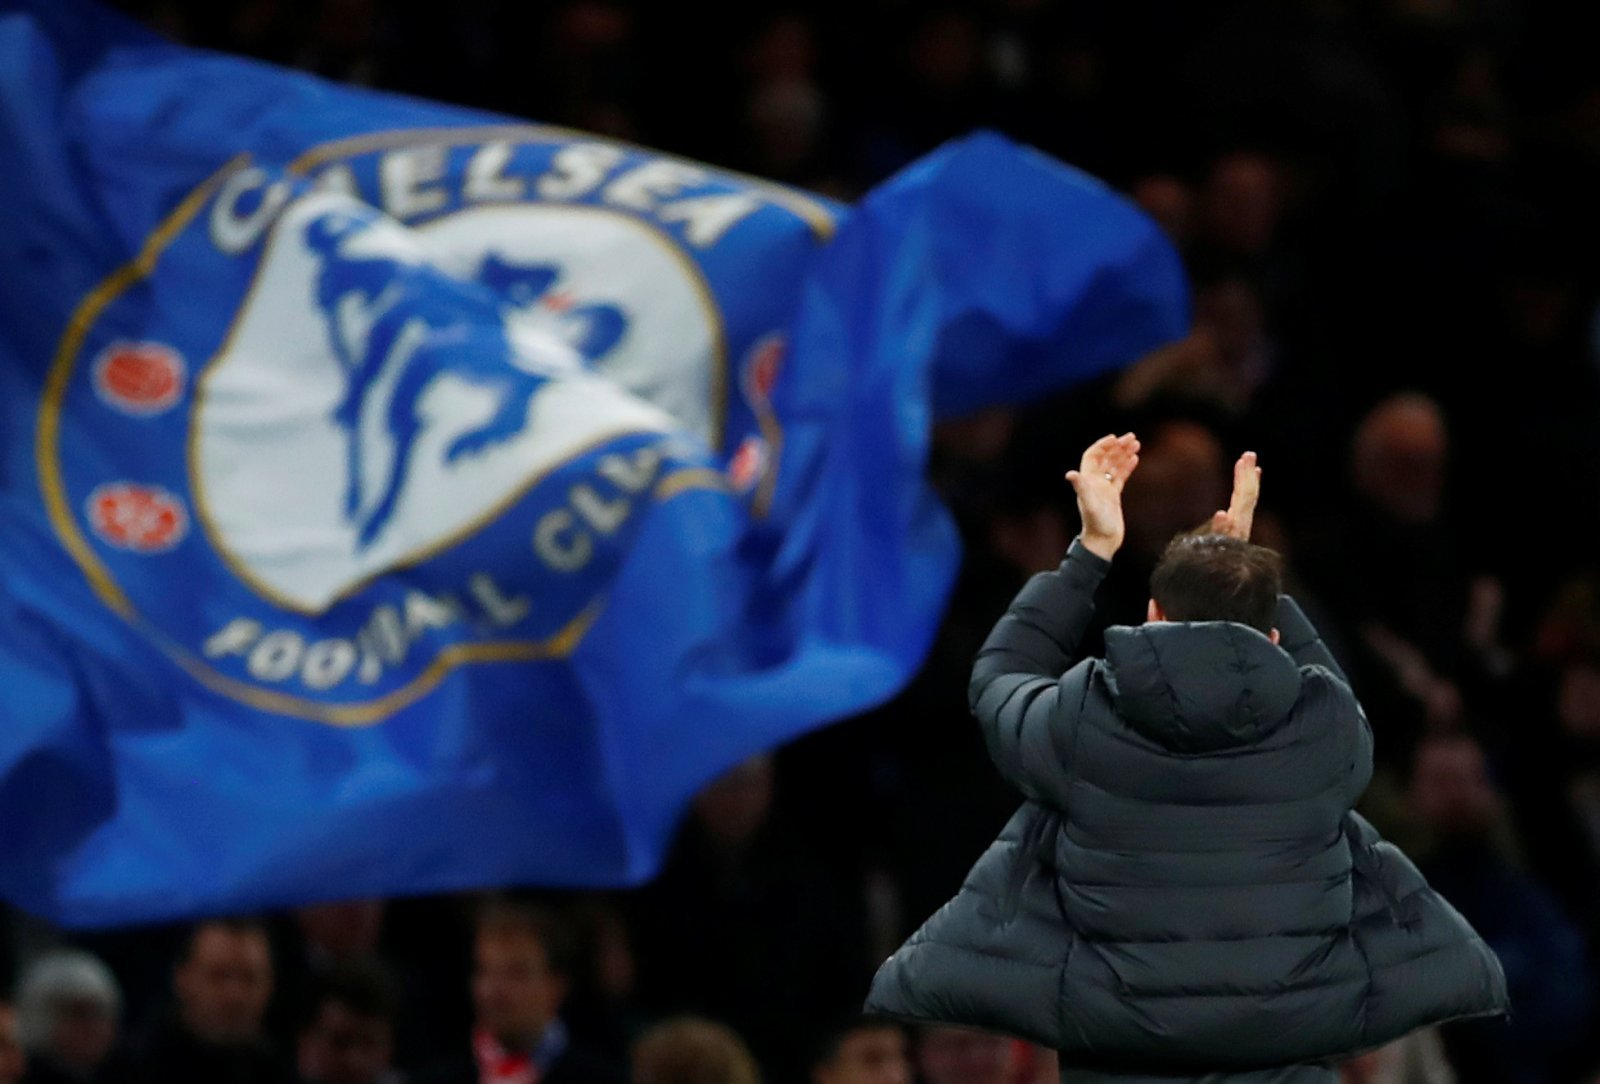 Chelsea: Fans thrilled after Blues launch stunning comeback in Champions League